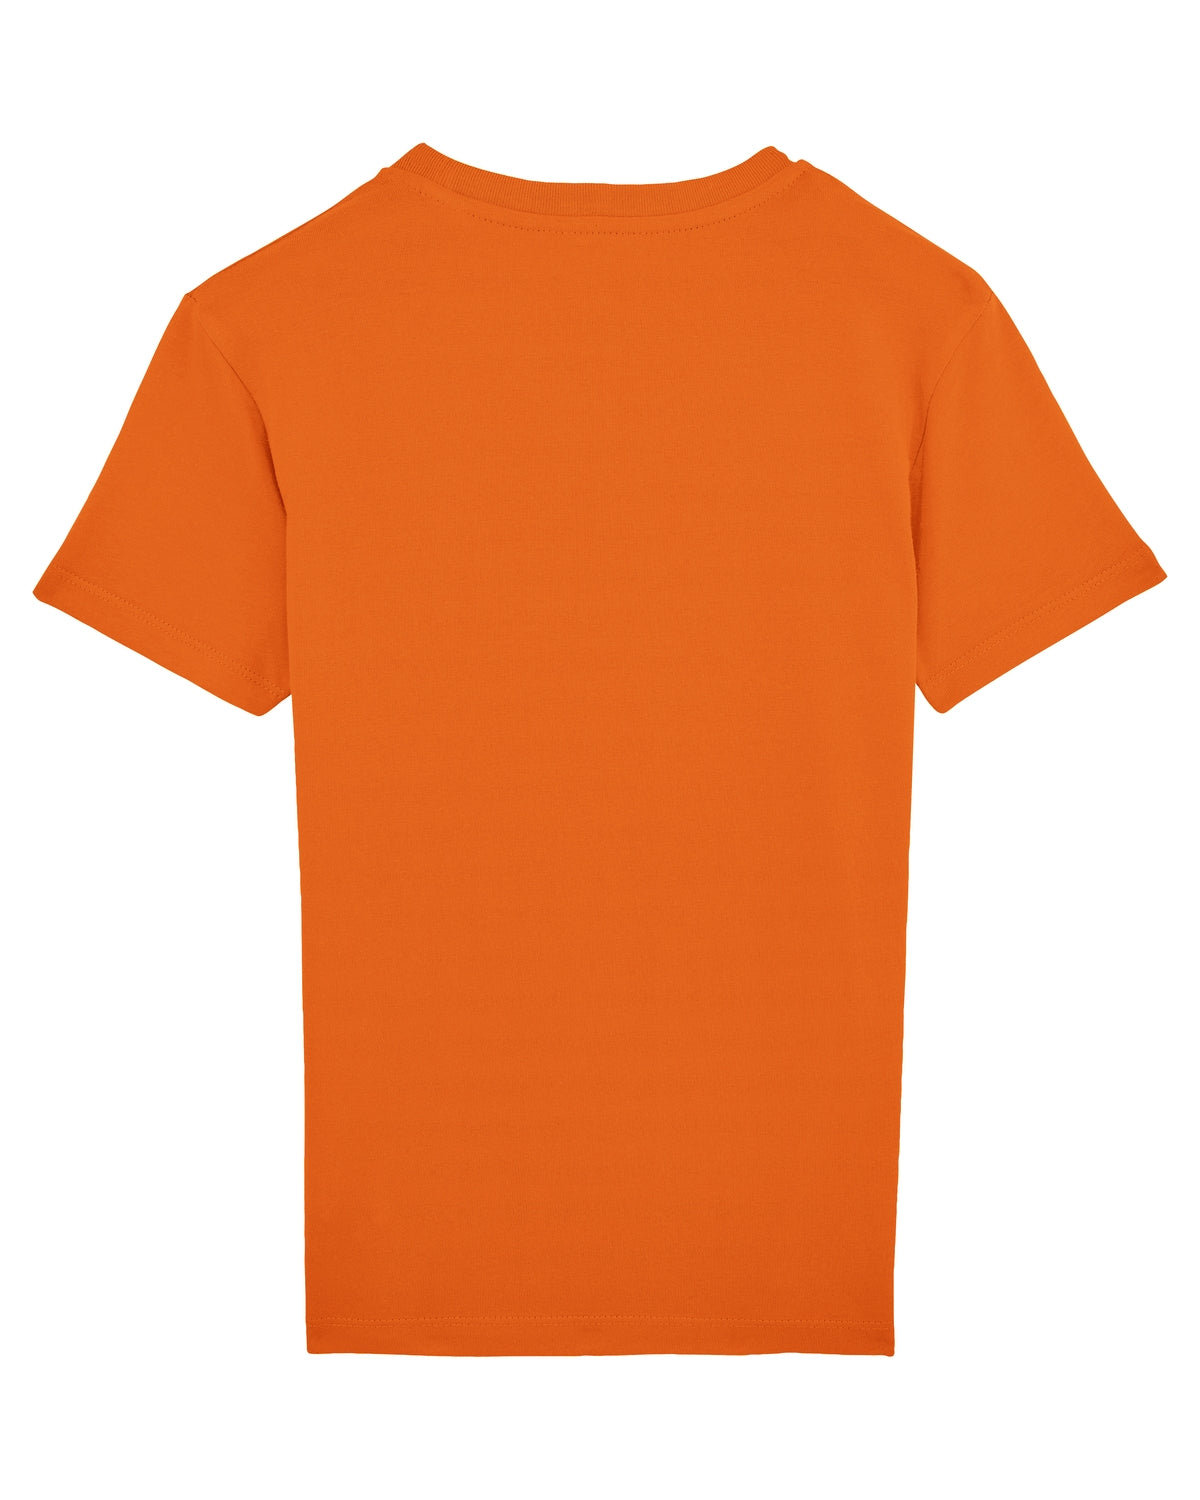 White Script Orange t-shirt